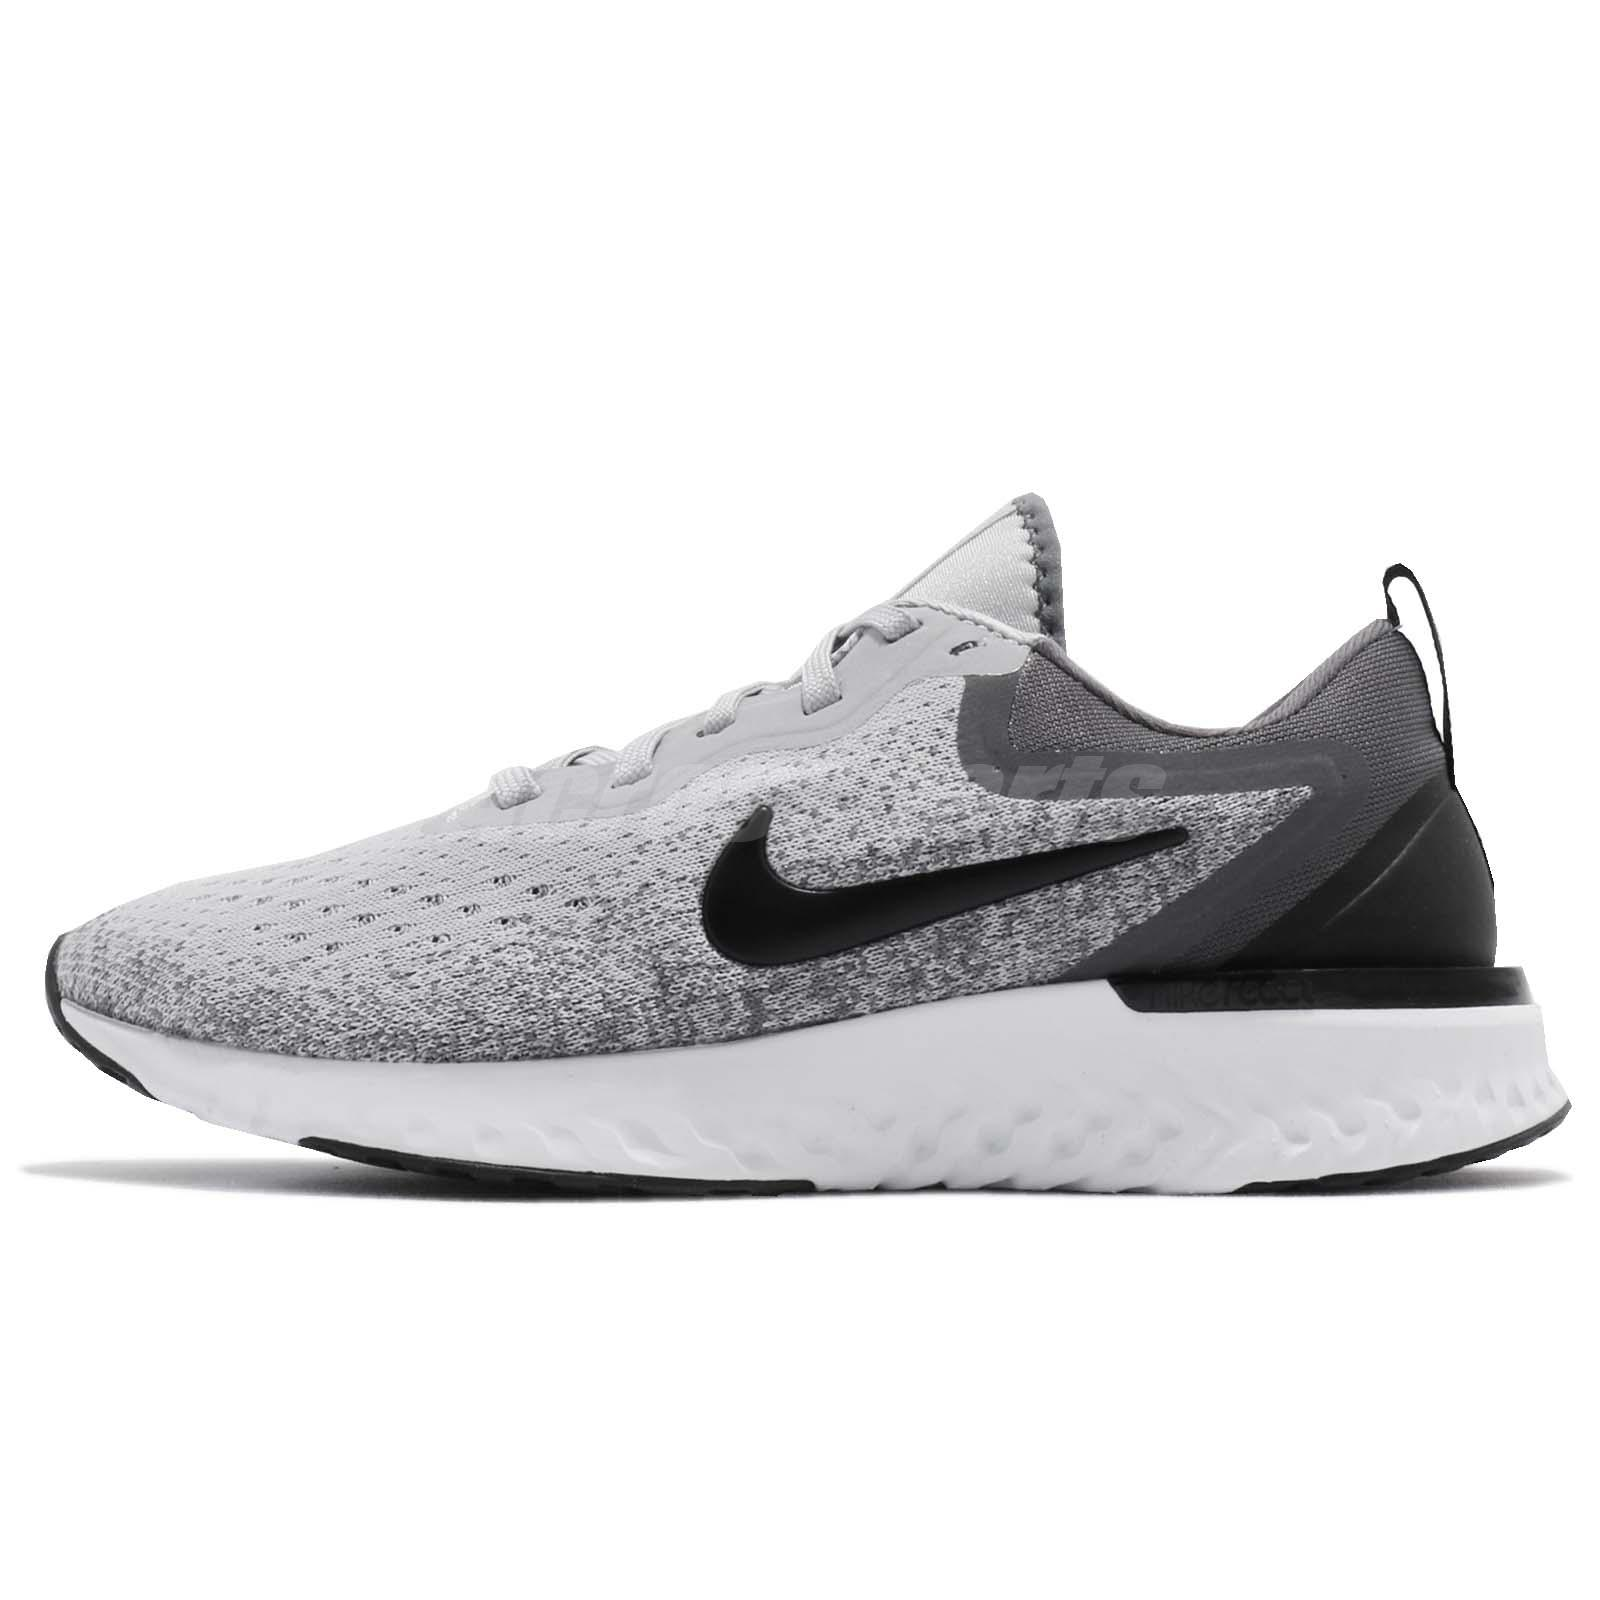 e241c6692bc Nike Wmns Odyssey React Wolf Grey Black Women Running Shoes Sneakers  AO9820-003